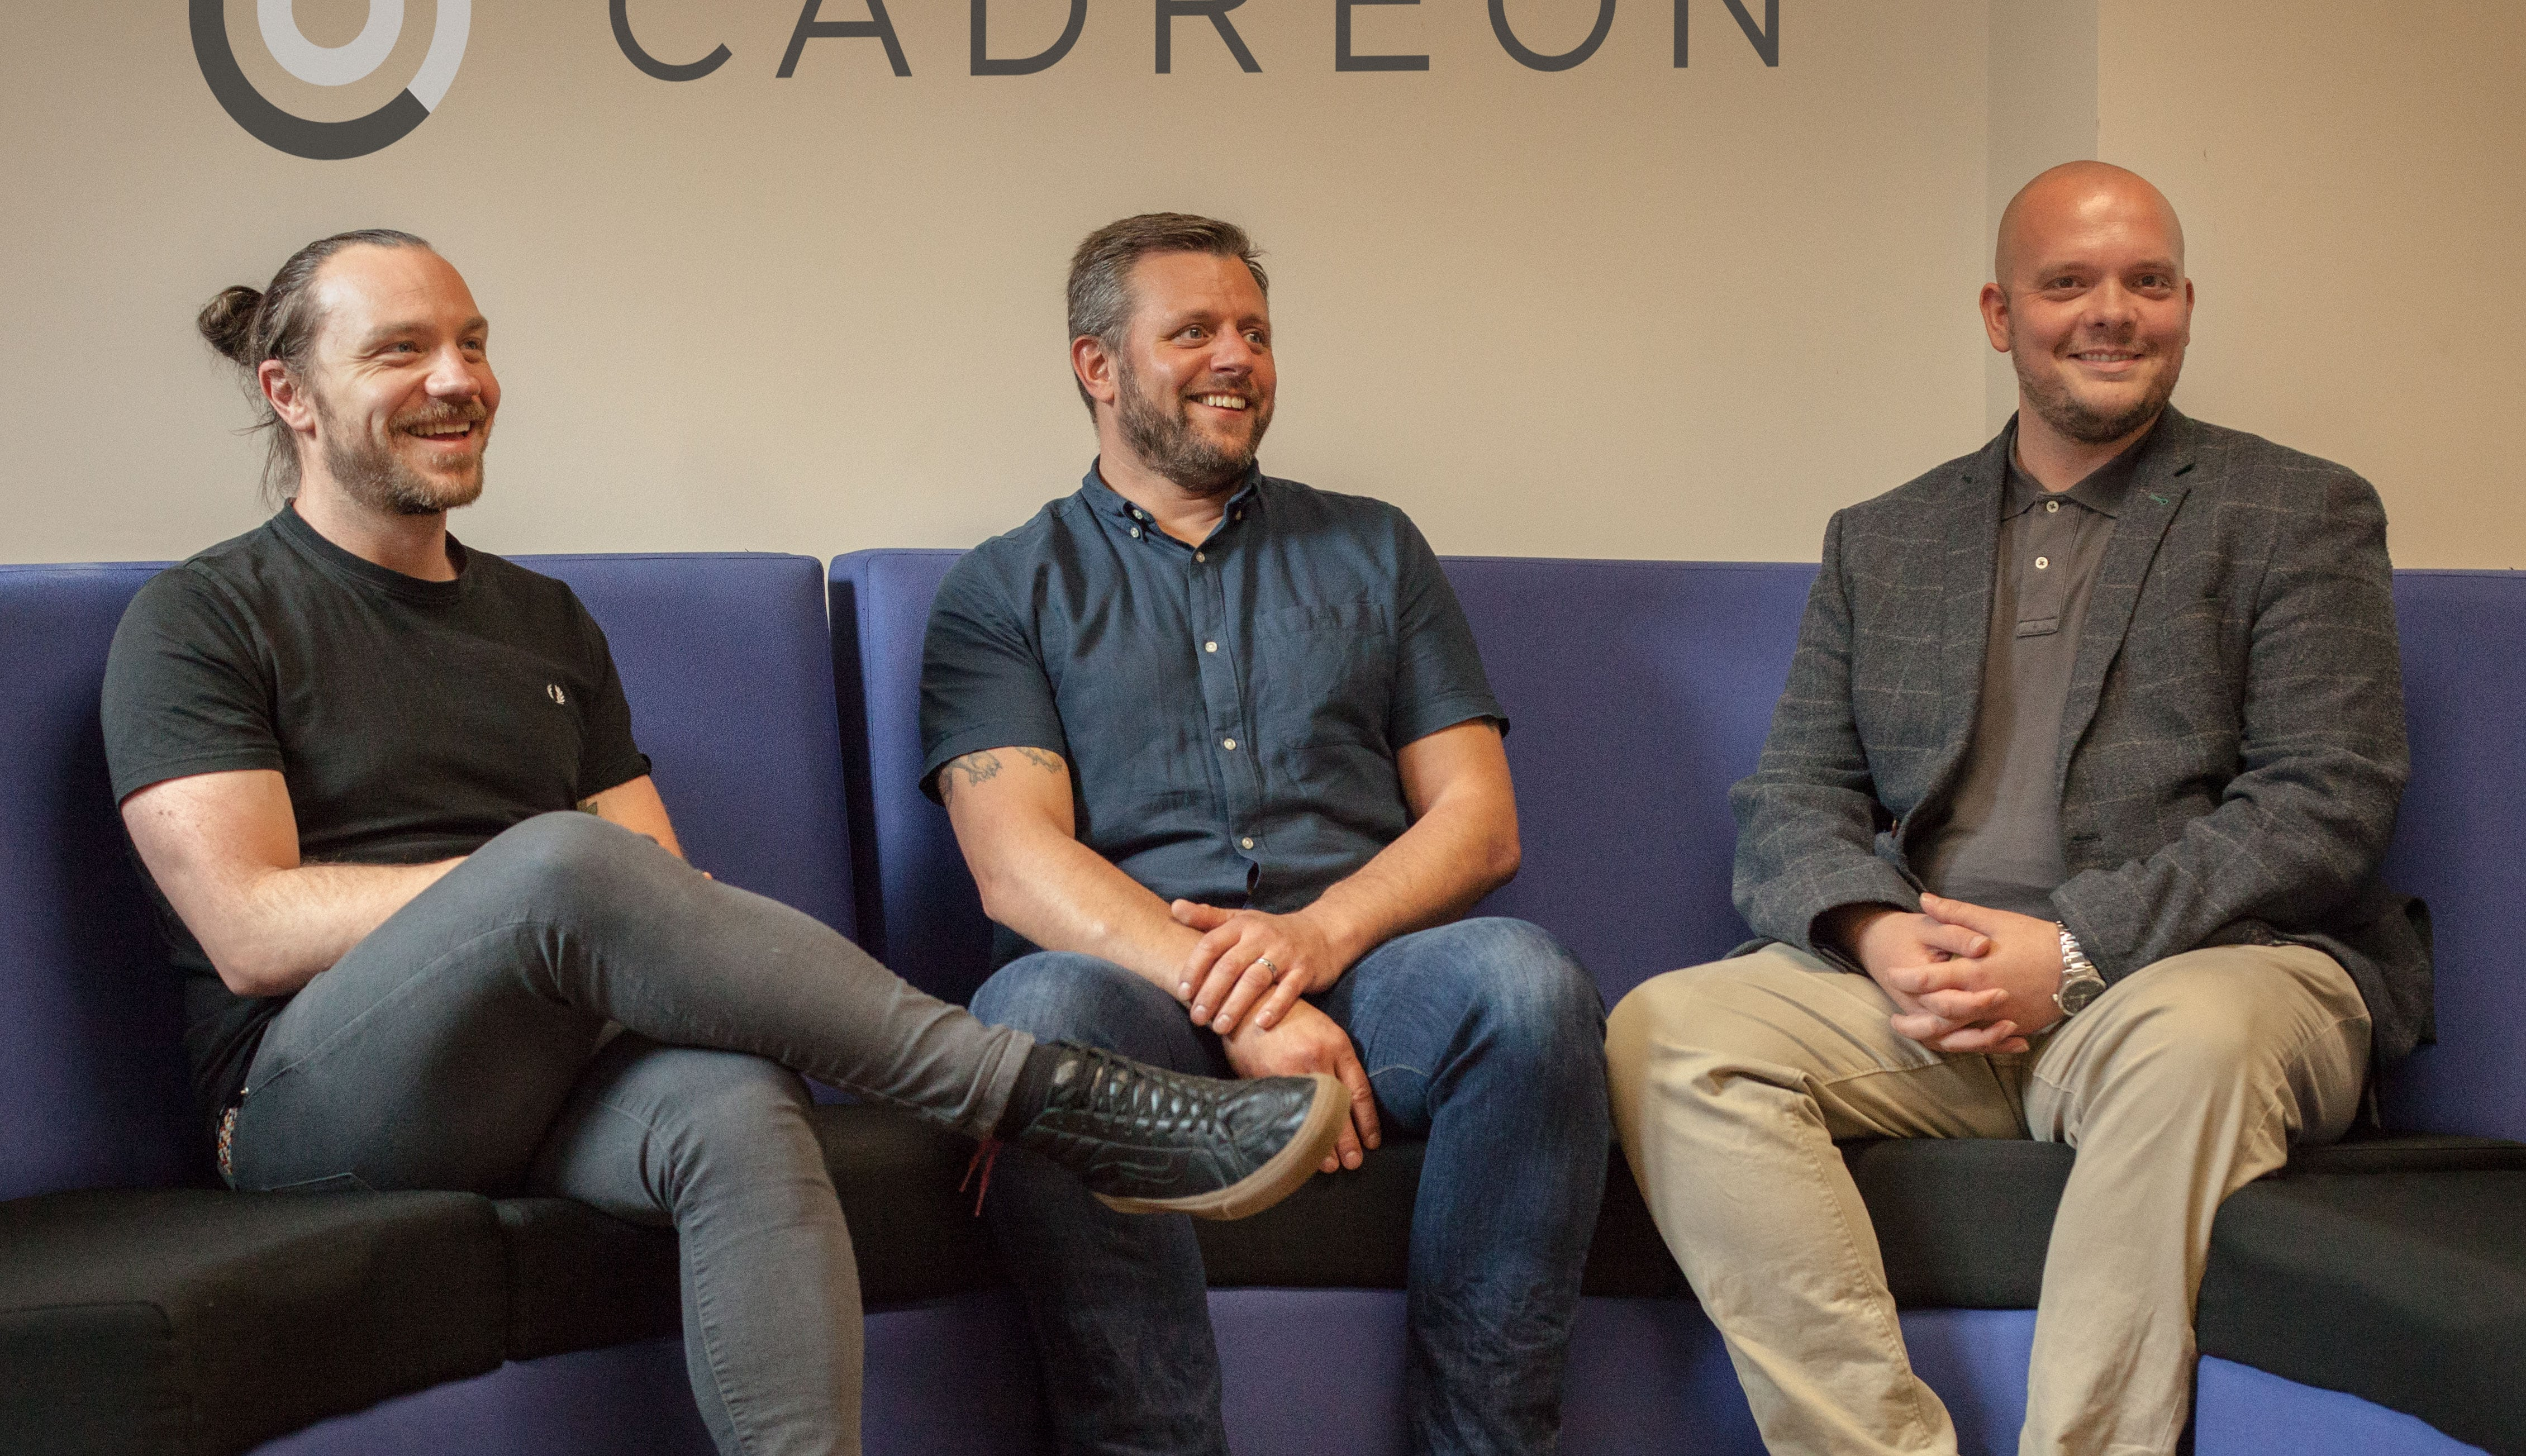 L to R, members of the new Cadreon team Mike McDougall, Steve Lee and Tony Booth